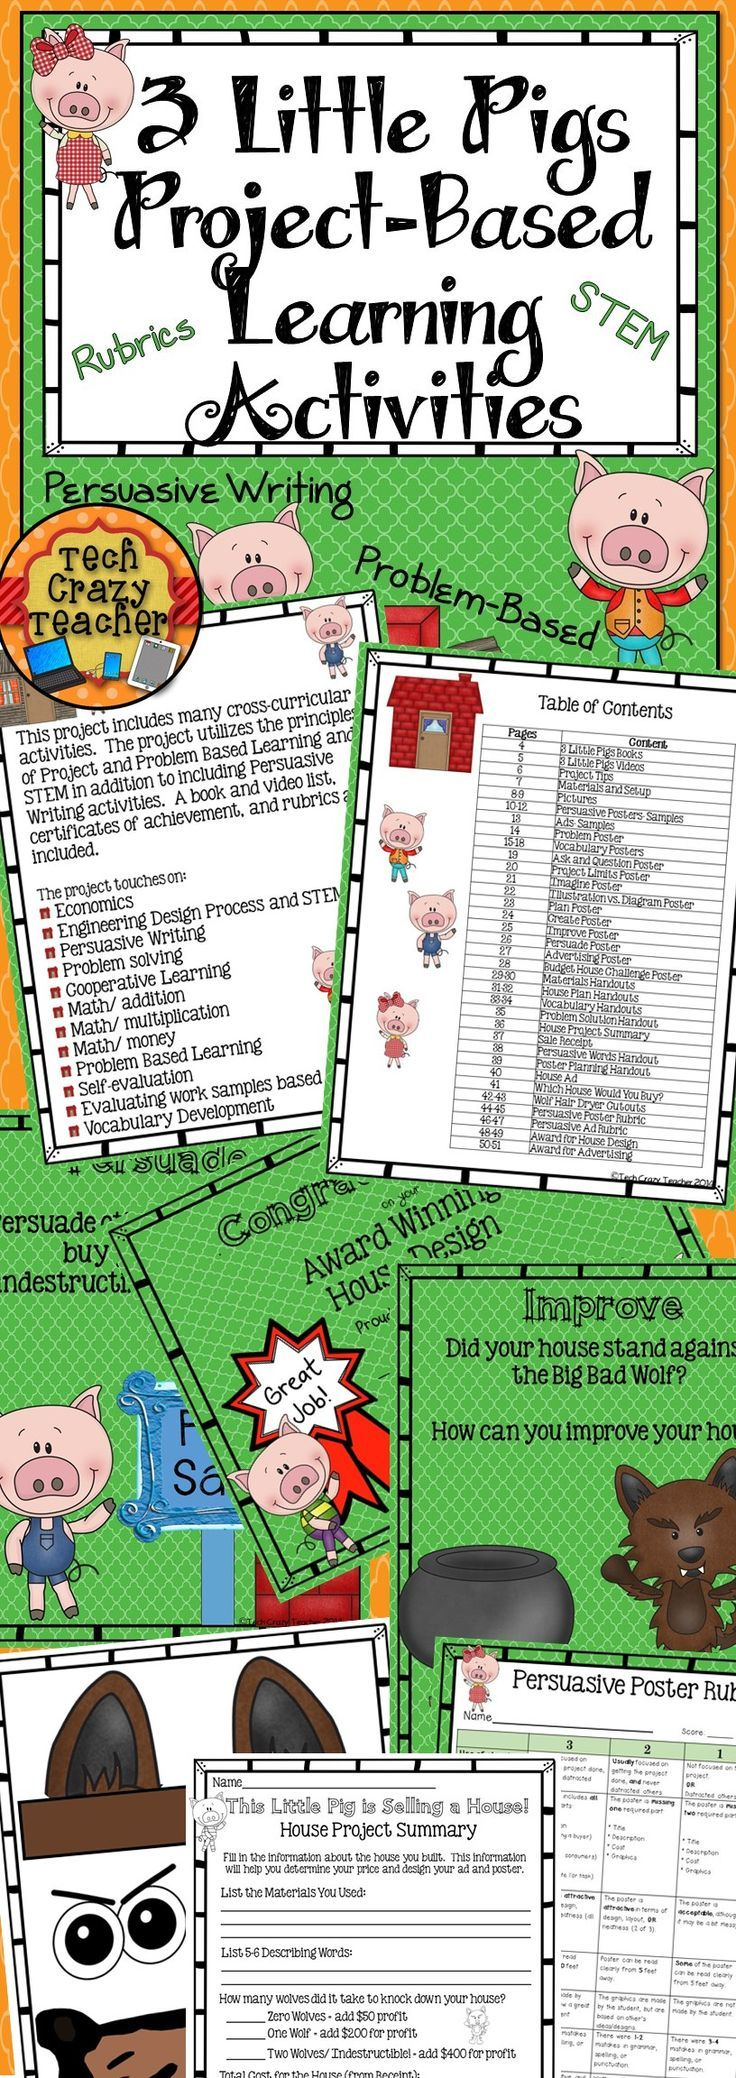 3 Little Pigs Project-Based Learning Activities: Persuasive writing, STEM, Problem-Based and Project Based learning all in one! Rubrics included $ (scheduled via http://www.tailwindapp.com?utm_source=pinterest&utm_medium=twpin&utm_content=post621547&utm_campaign=scheduler_attribution)